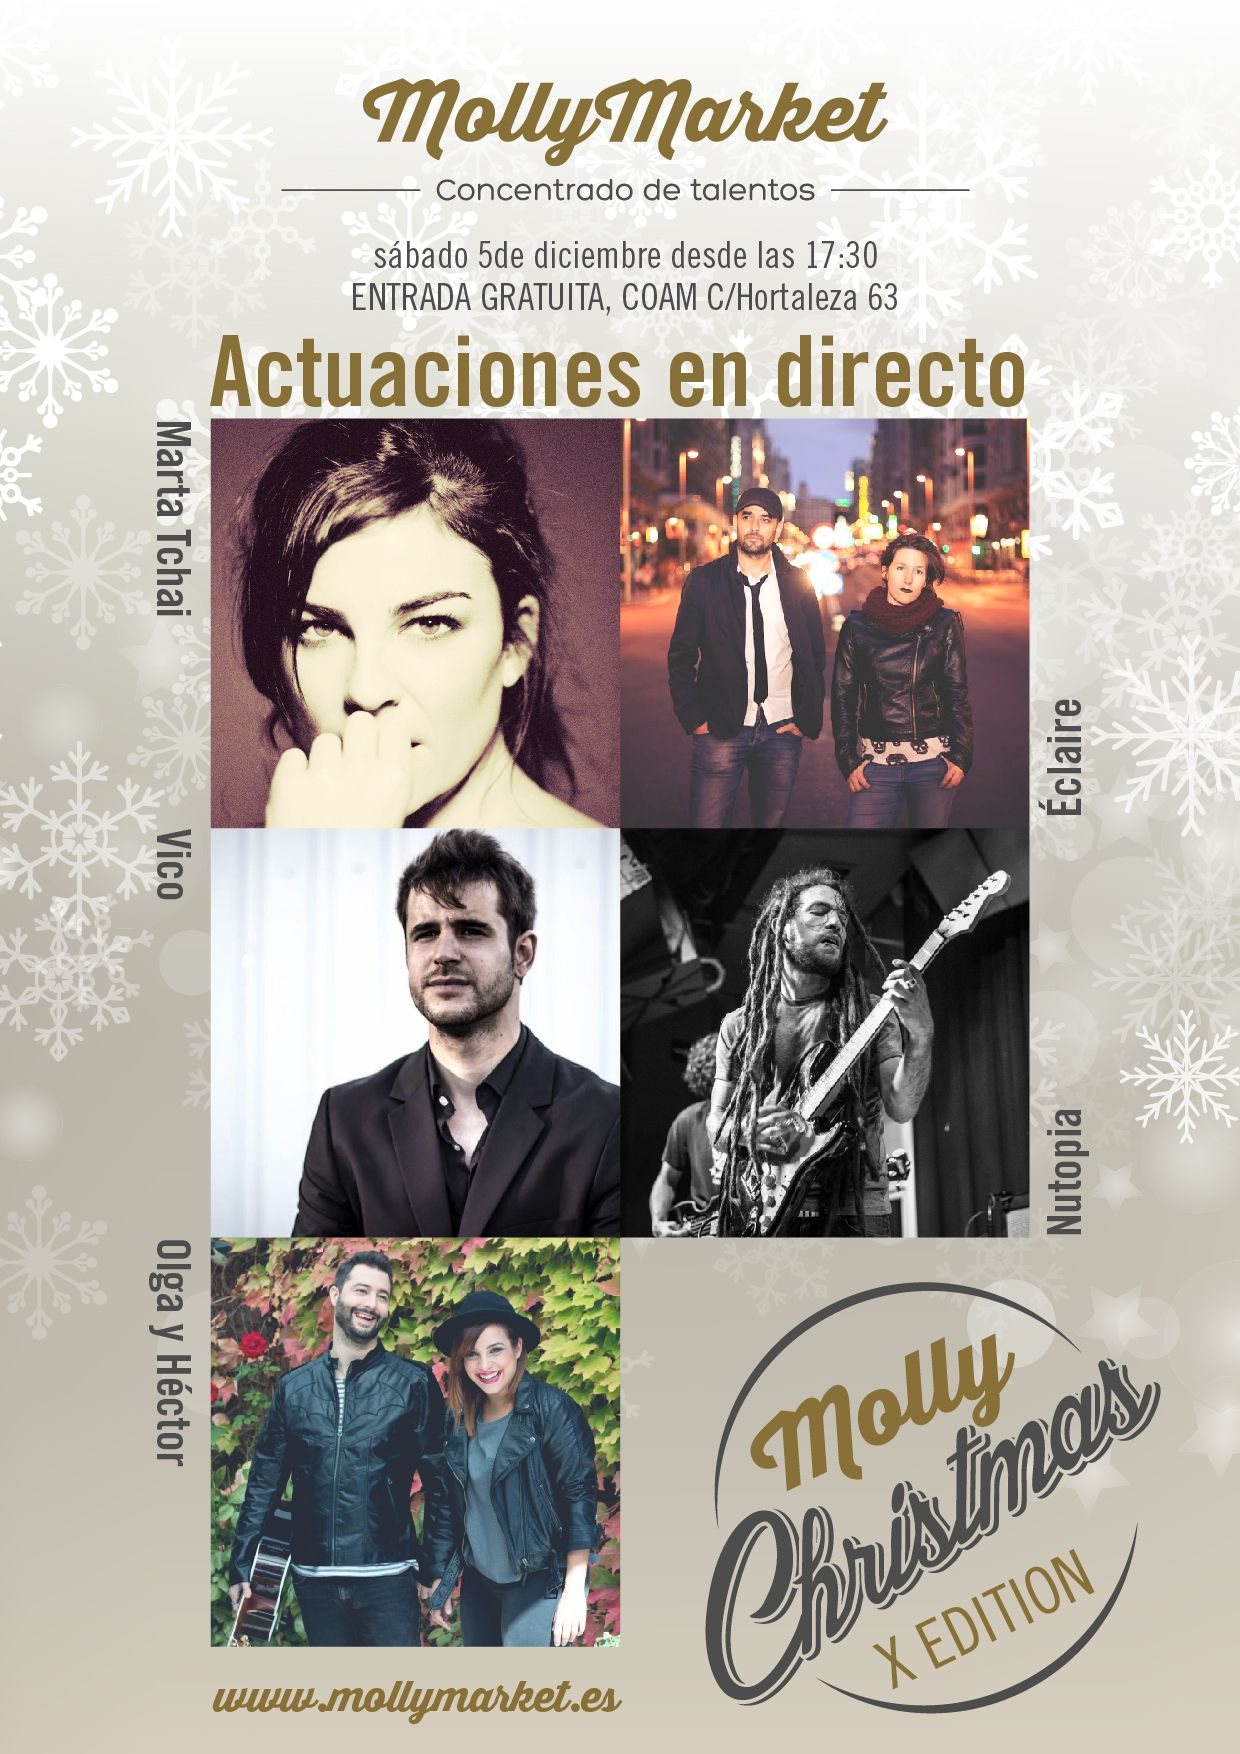 CARTEL_MUSICAL-01 (1)